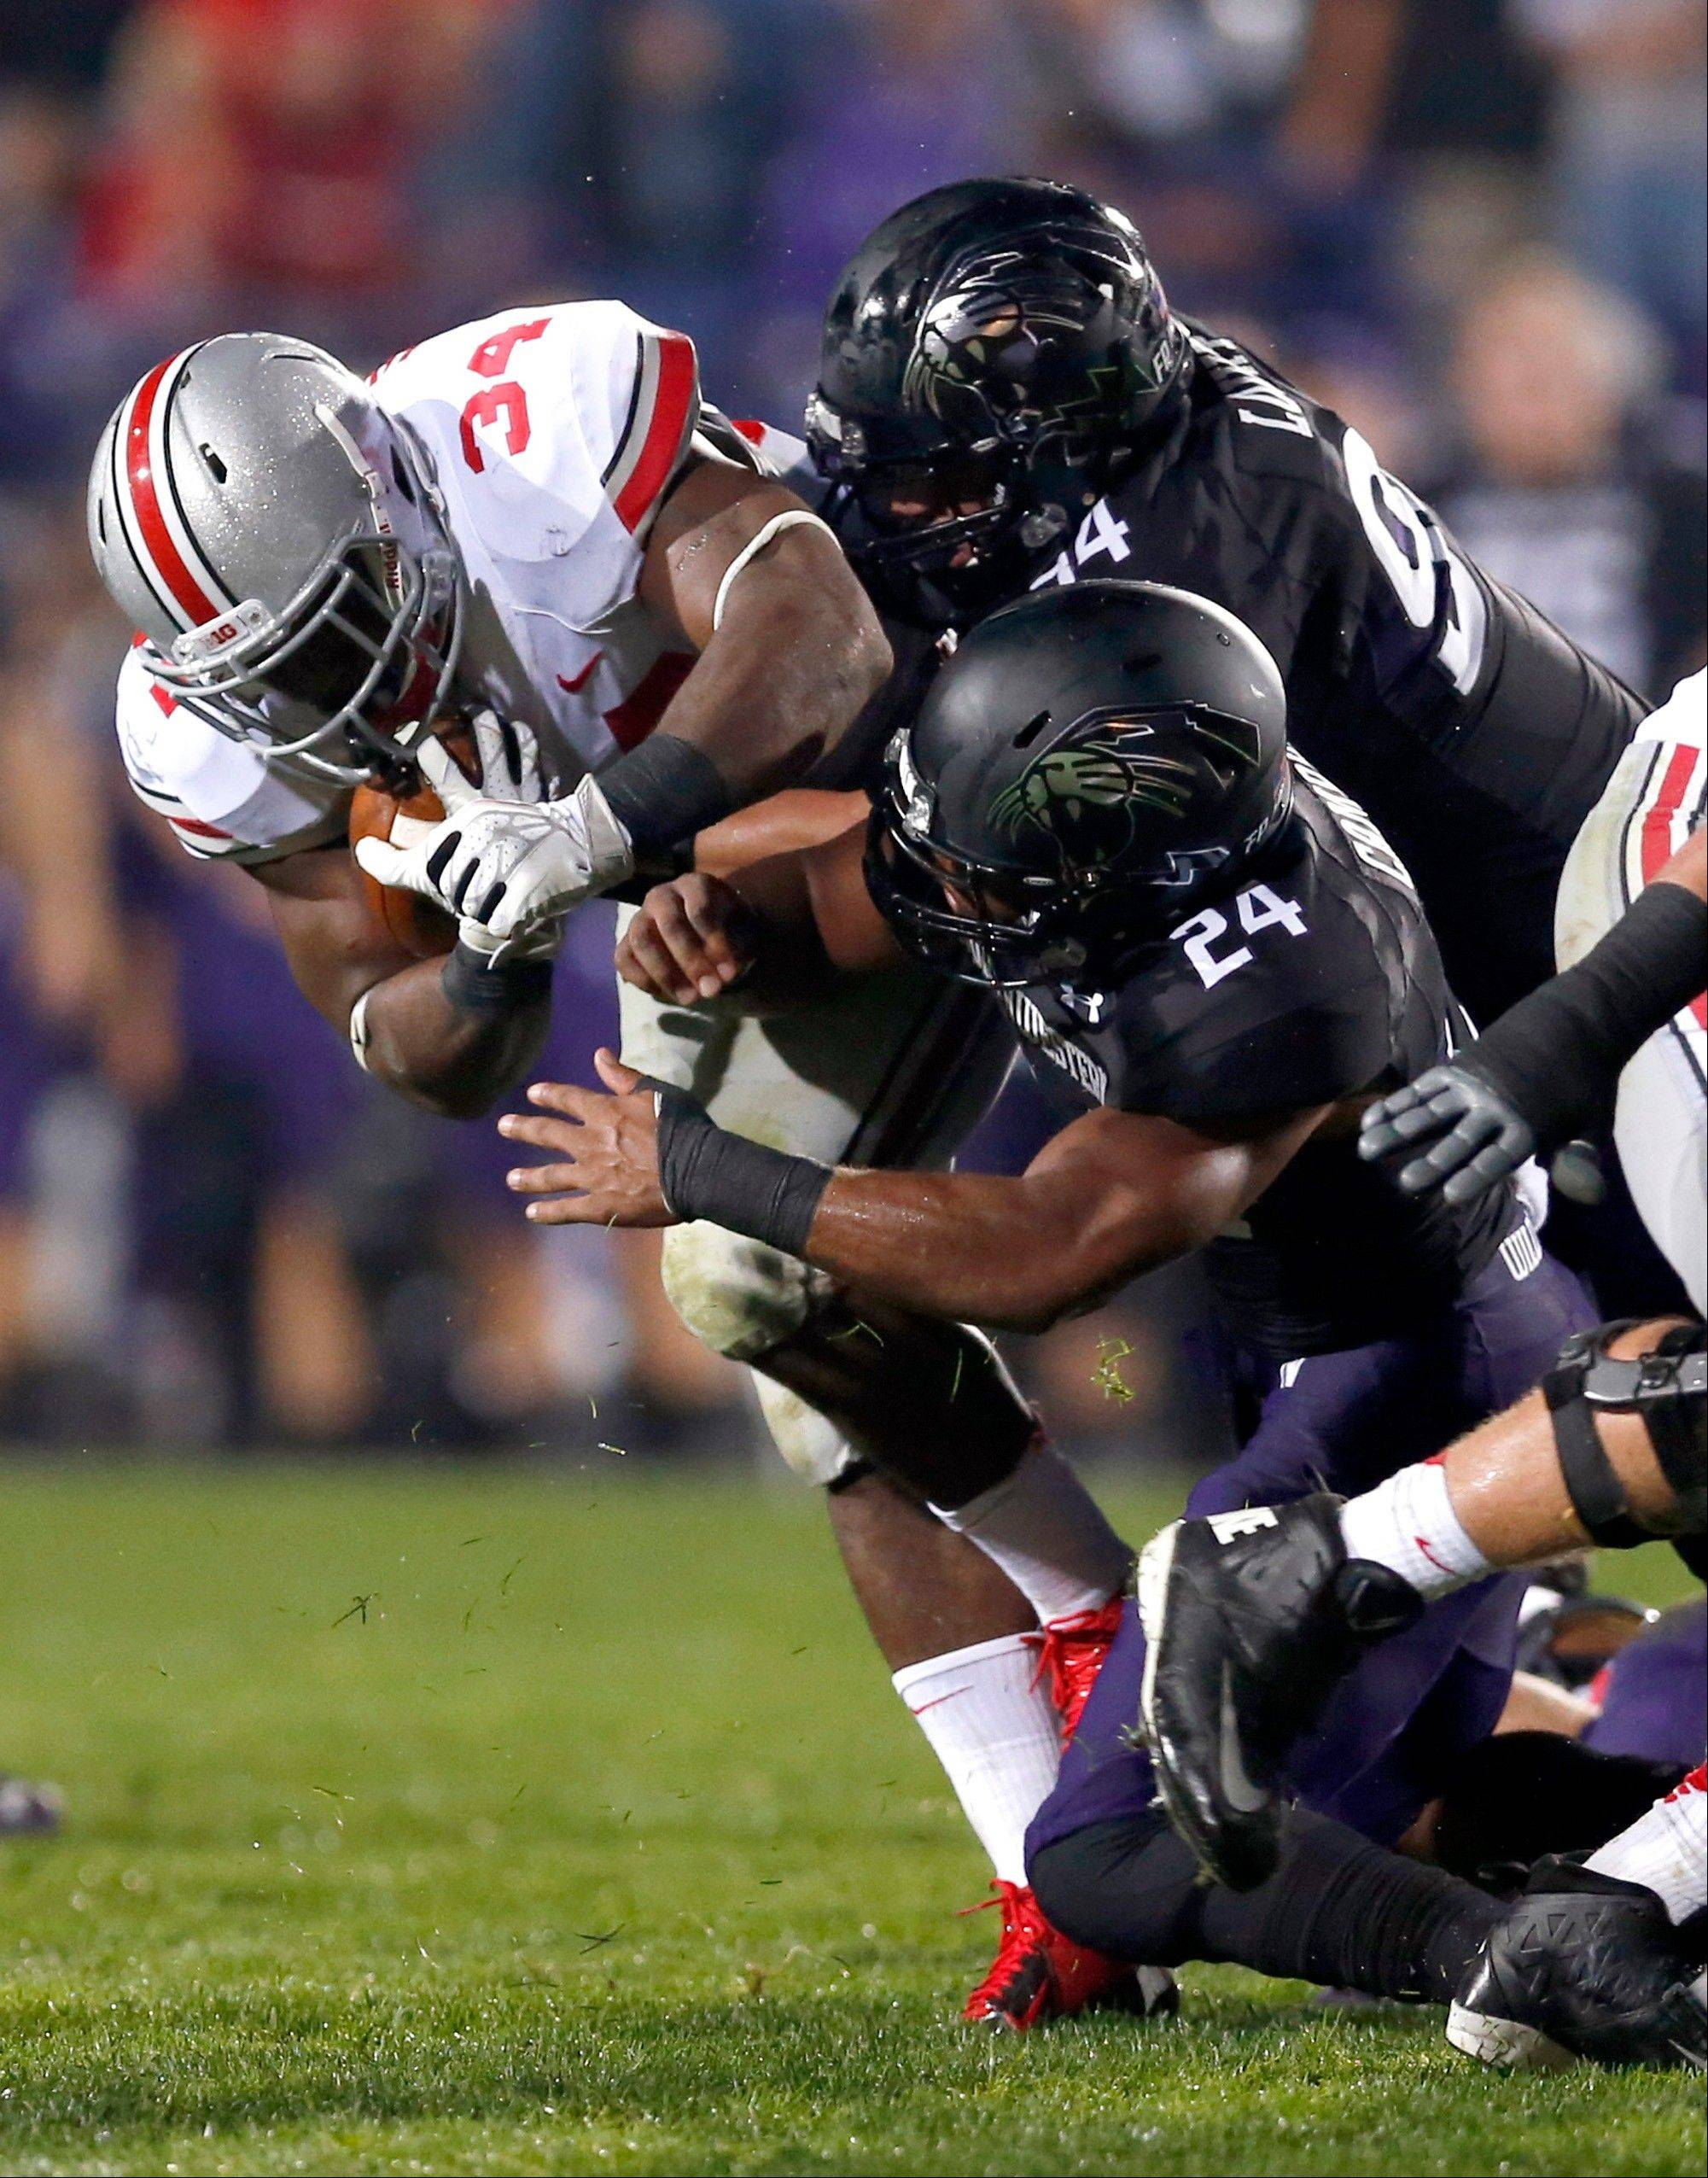 Ohio State running back Carlos Hyde (34) carries the ball and is tackled by Northwestern defensive lineman Dean Lowry (94) and safety Ibraheim Campbell during Saturday's game in Evanston. Ohio State beat Northwestern 40-30.